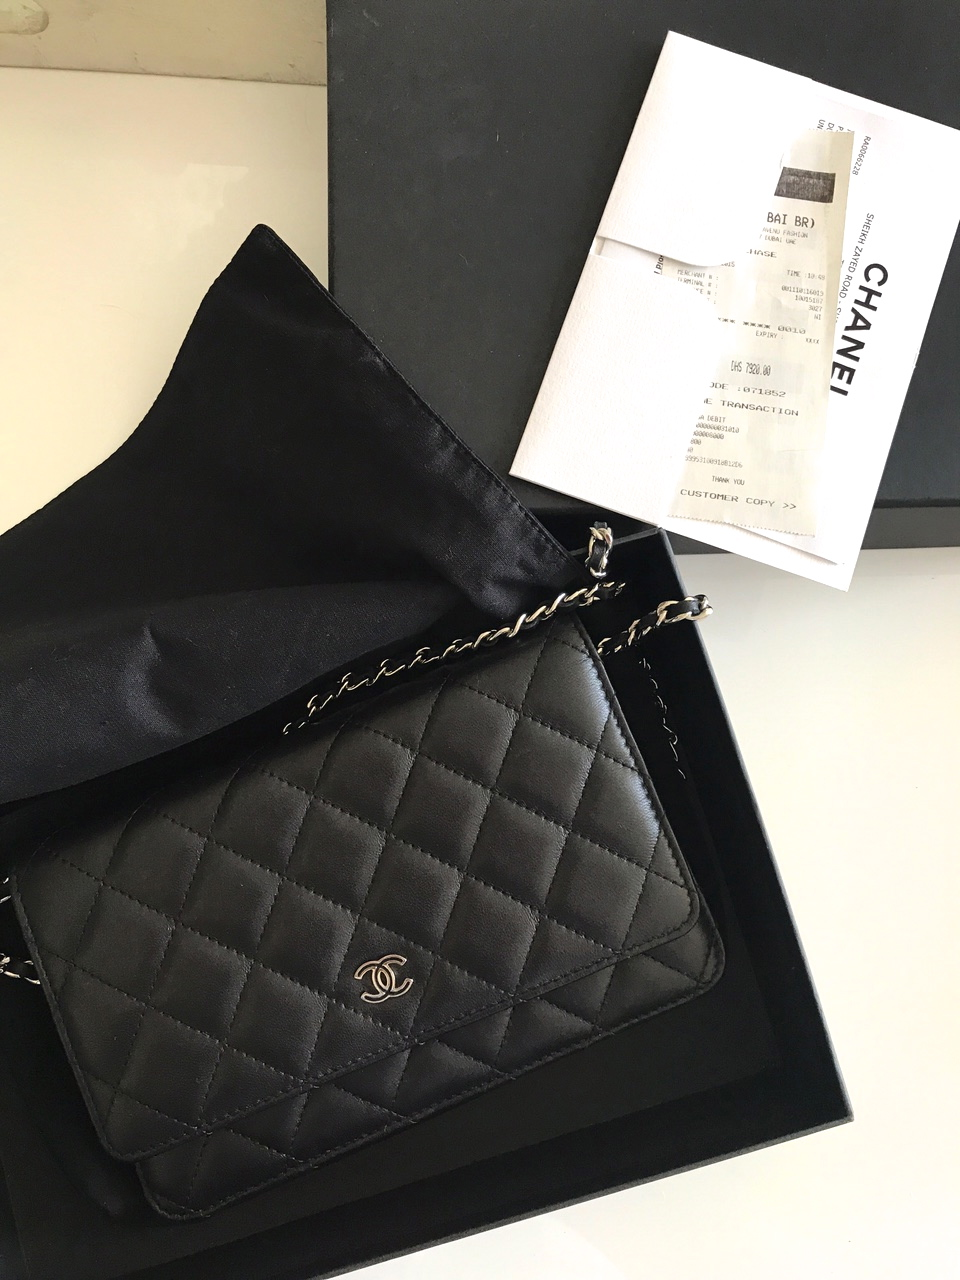 2ffbe6000dc Chanel Wallet On Chain    Classic black quilted lambskin    Silver hardware     Original box    Original dustbag    Original receipt    Used a couple of  ...